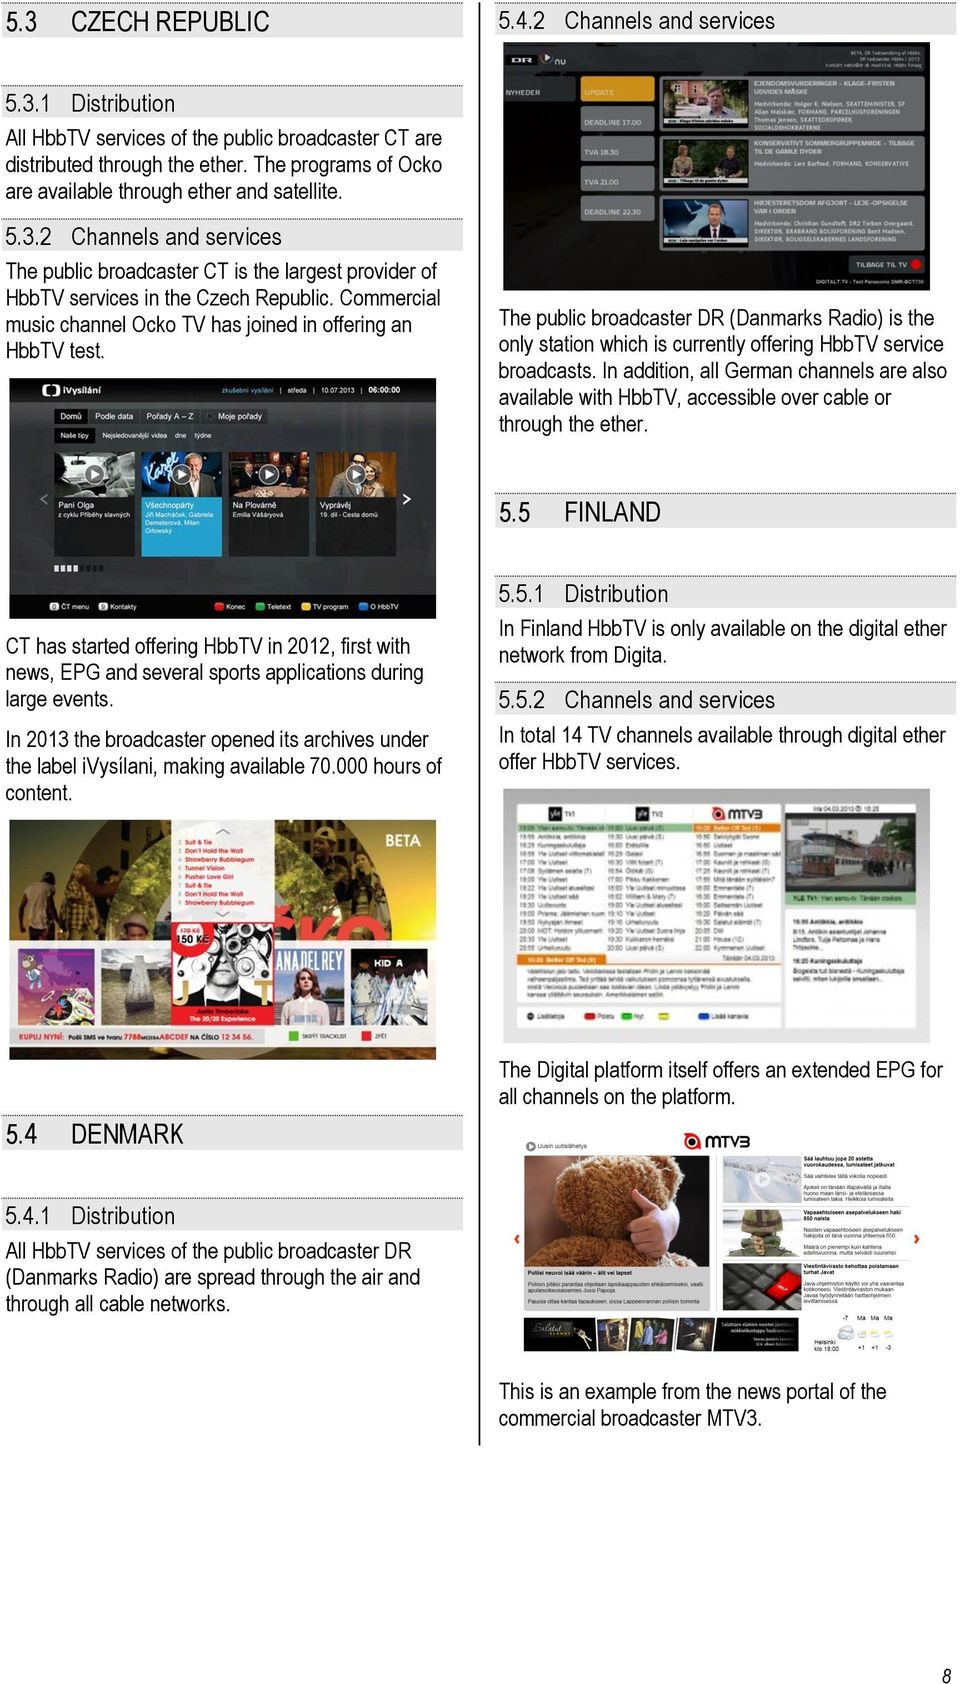 Commercial music channel Ocko TV has joined in offering an HbbTV test. The public broadcaster DR (Danmarks Radio) is the only station which is currently offering HbbTV service broadcasts.